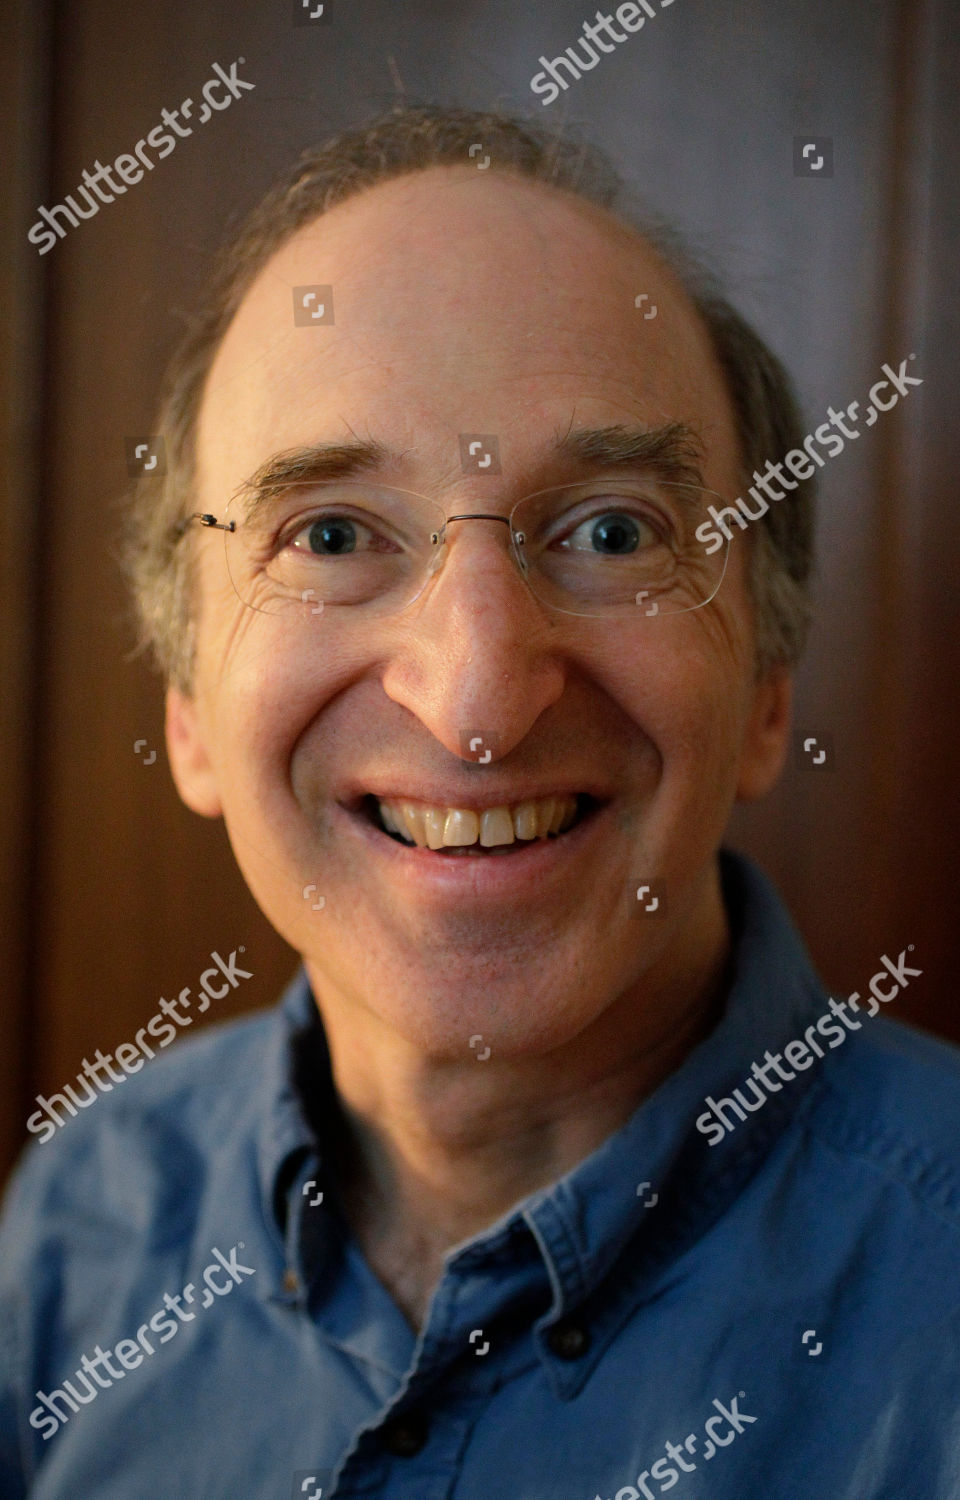 Stock photo of Nobel Physics Perlmutter, Berkeley, USA